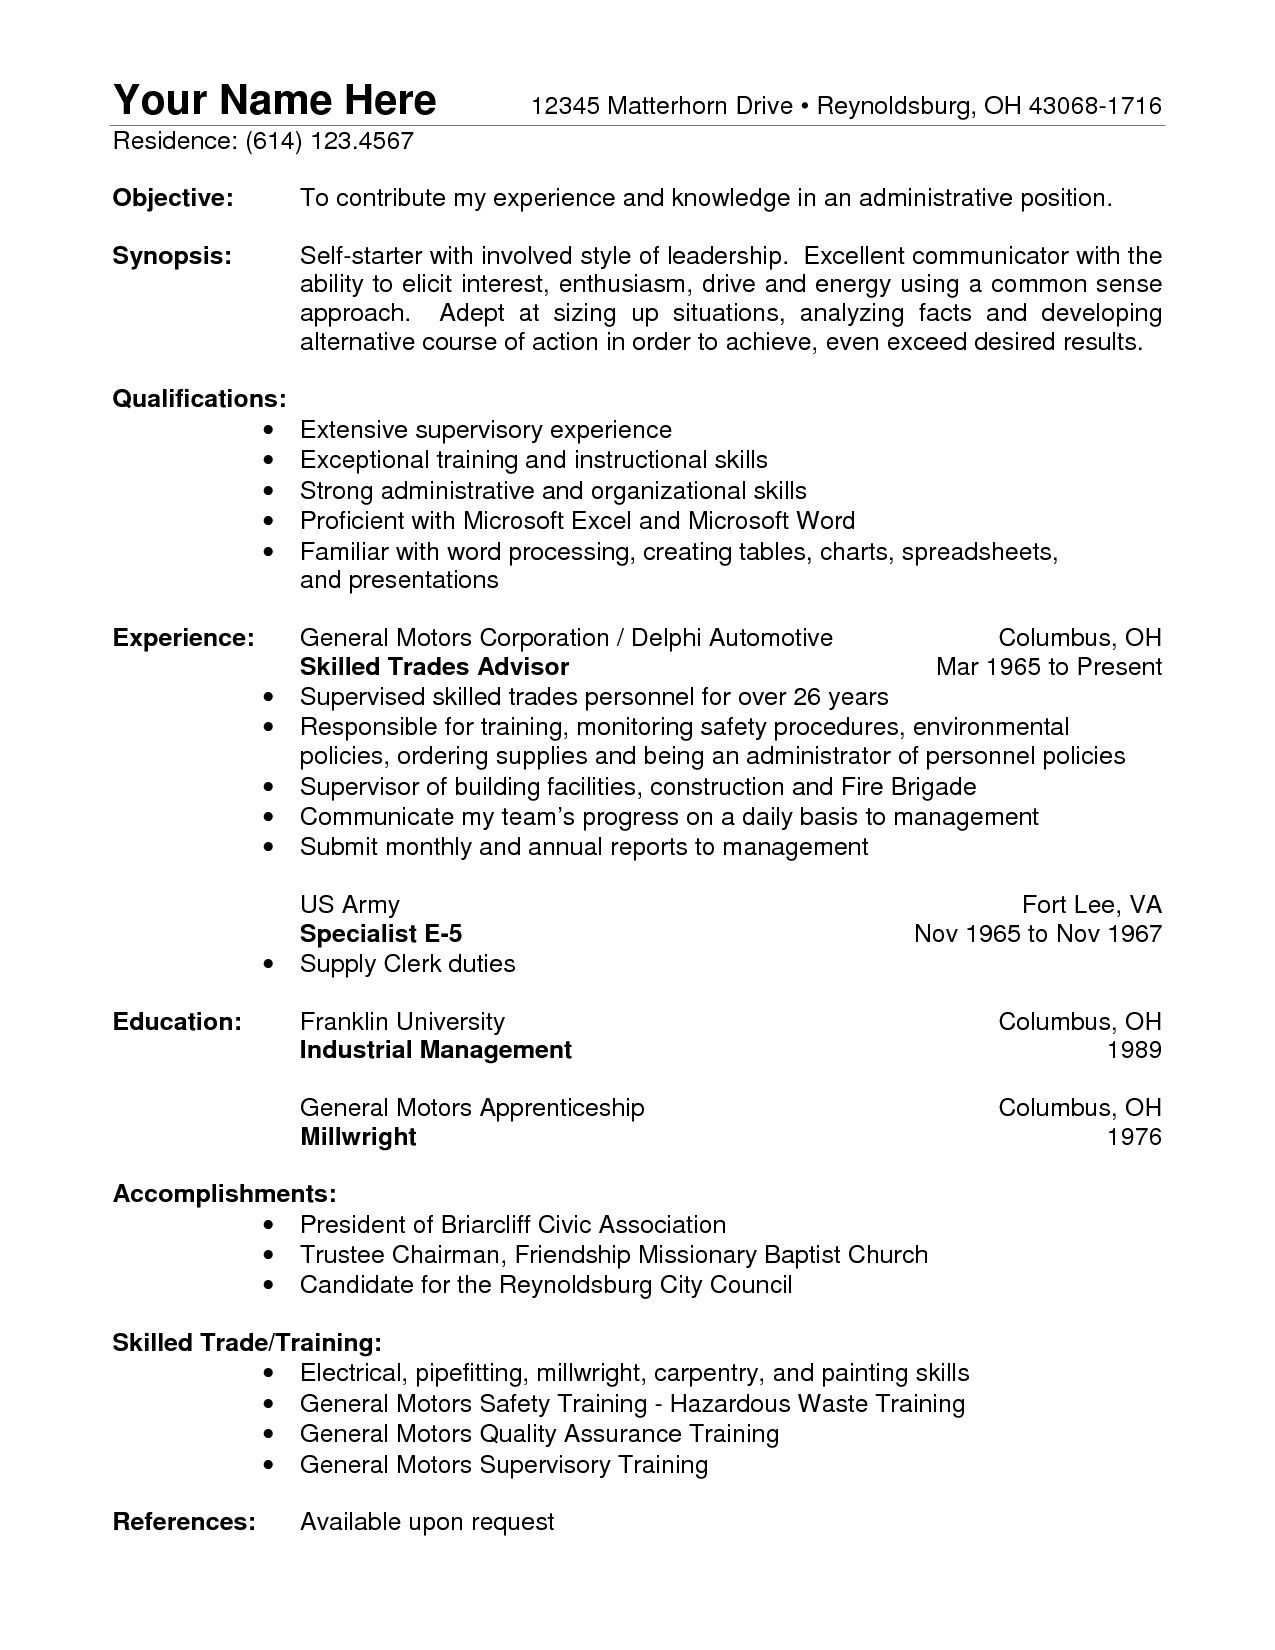 Free Examples Of Resumes Warehouse Resume Template  Warehouse Resume Template We Provide